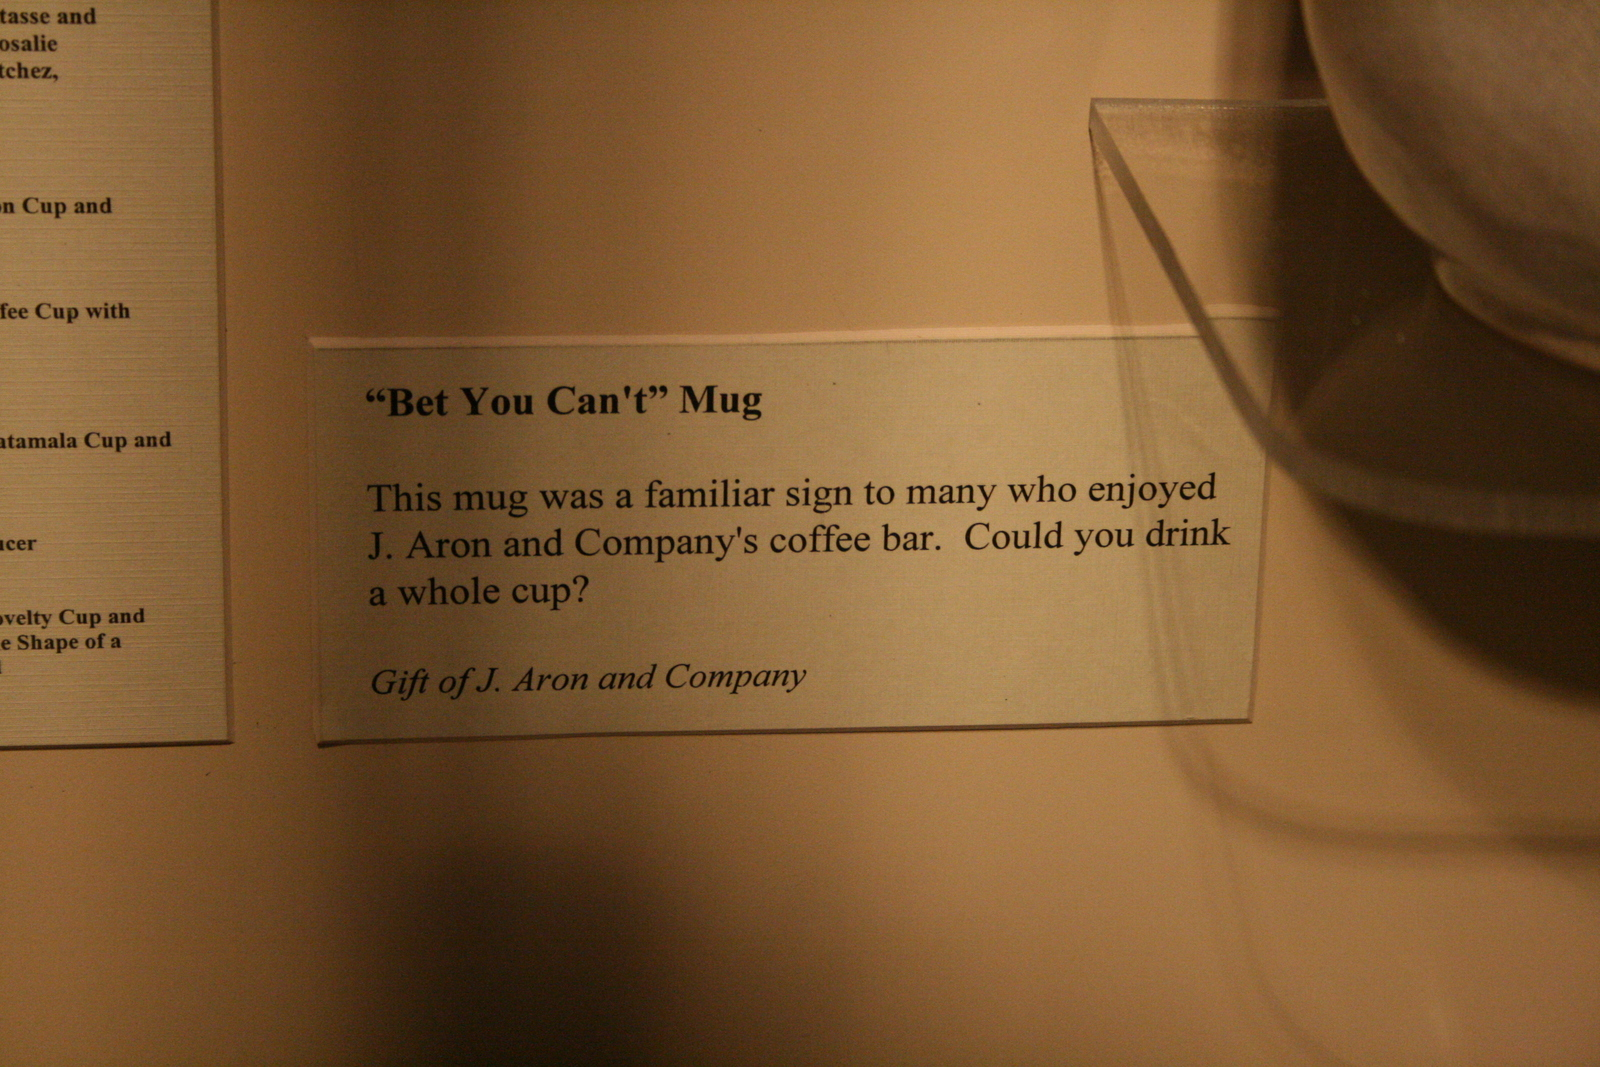 [Picture: Met you can't mug 2: the caption]